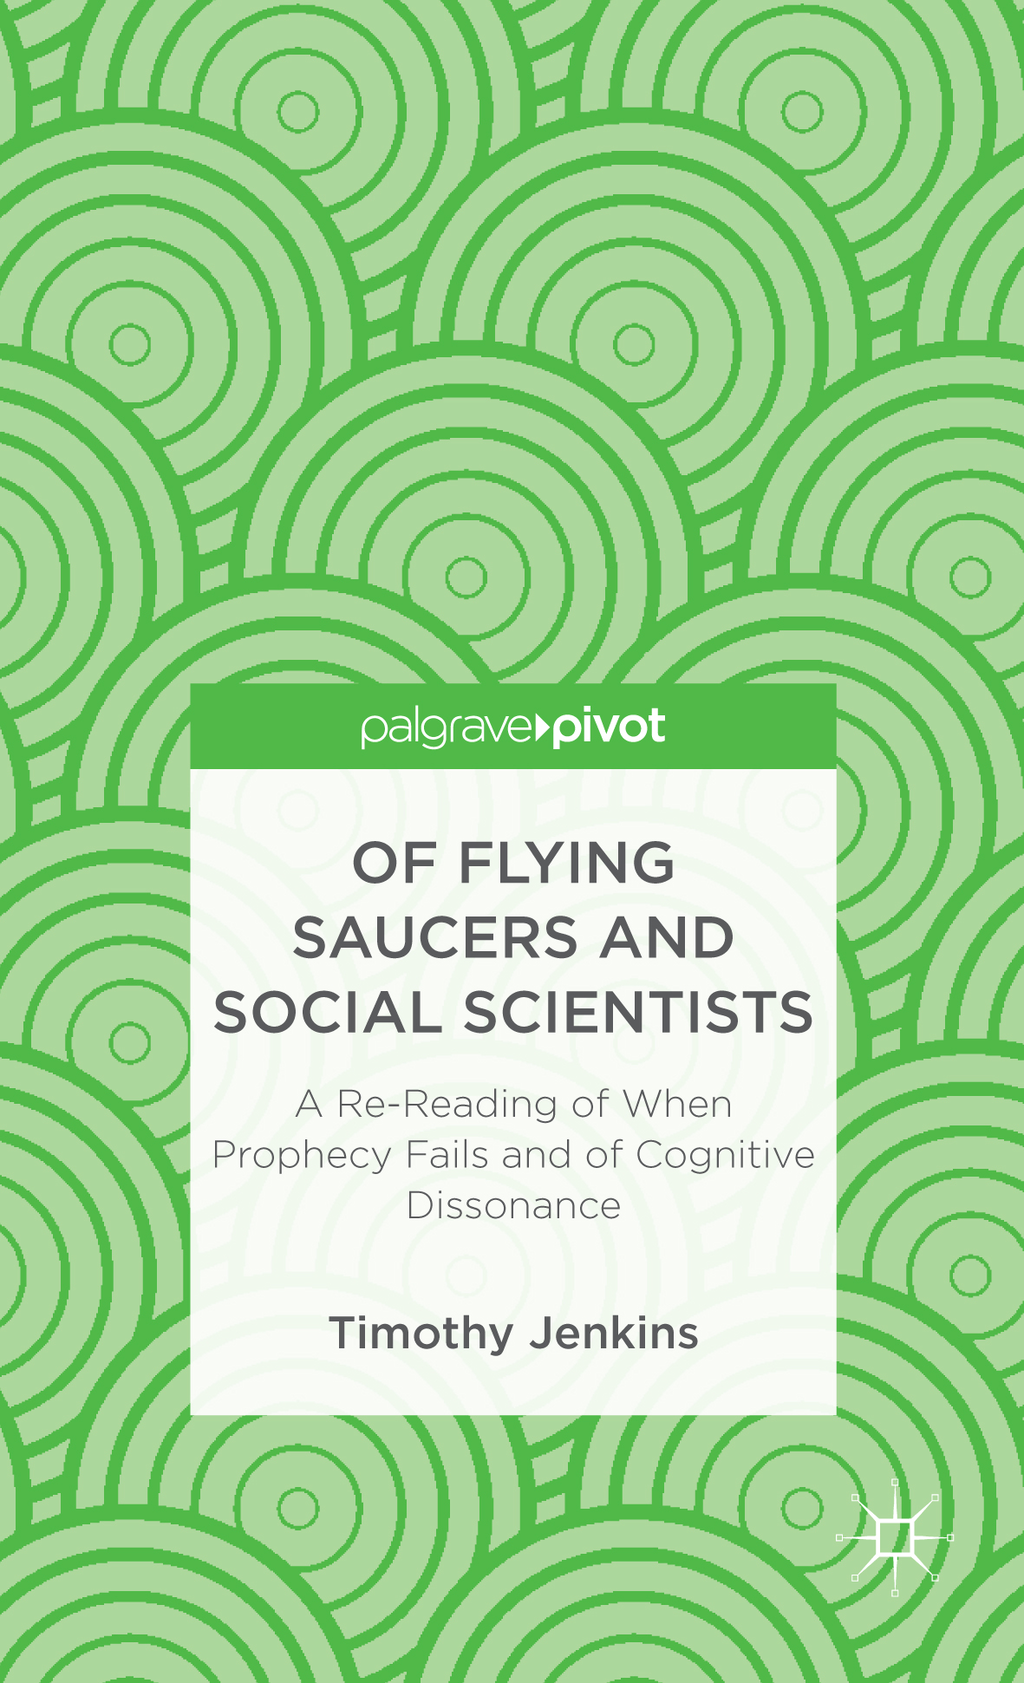 Of Flying Saucers and Social Scientists A Re-Reading of When Prophecy Fails and of Cognitive Dissonance